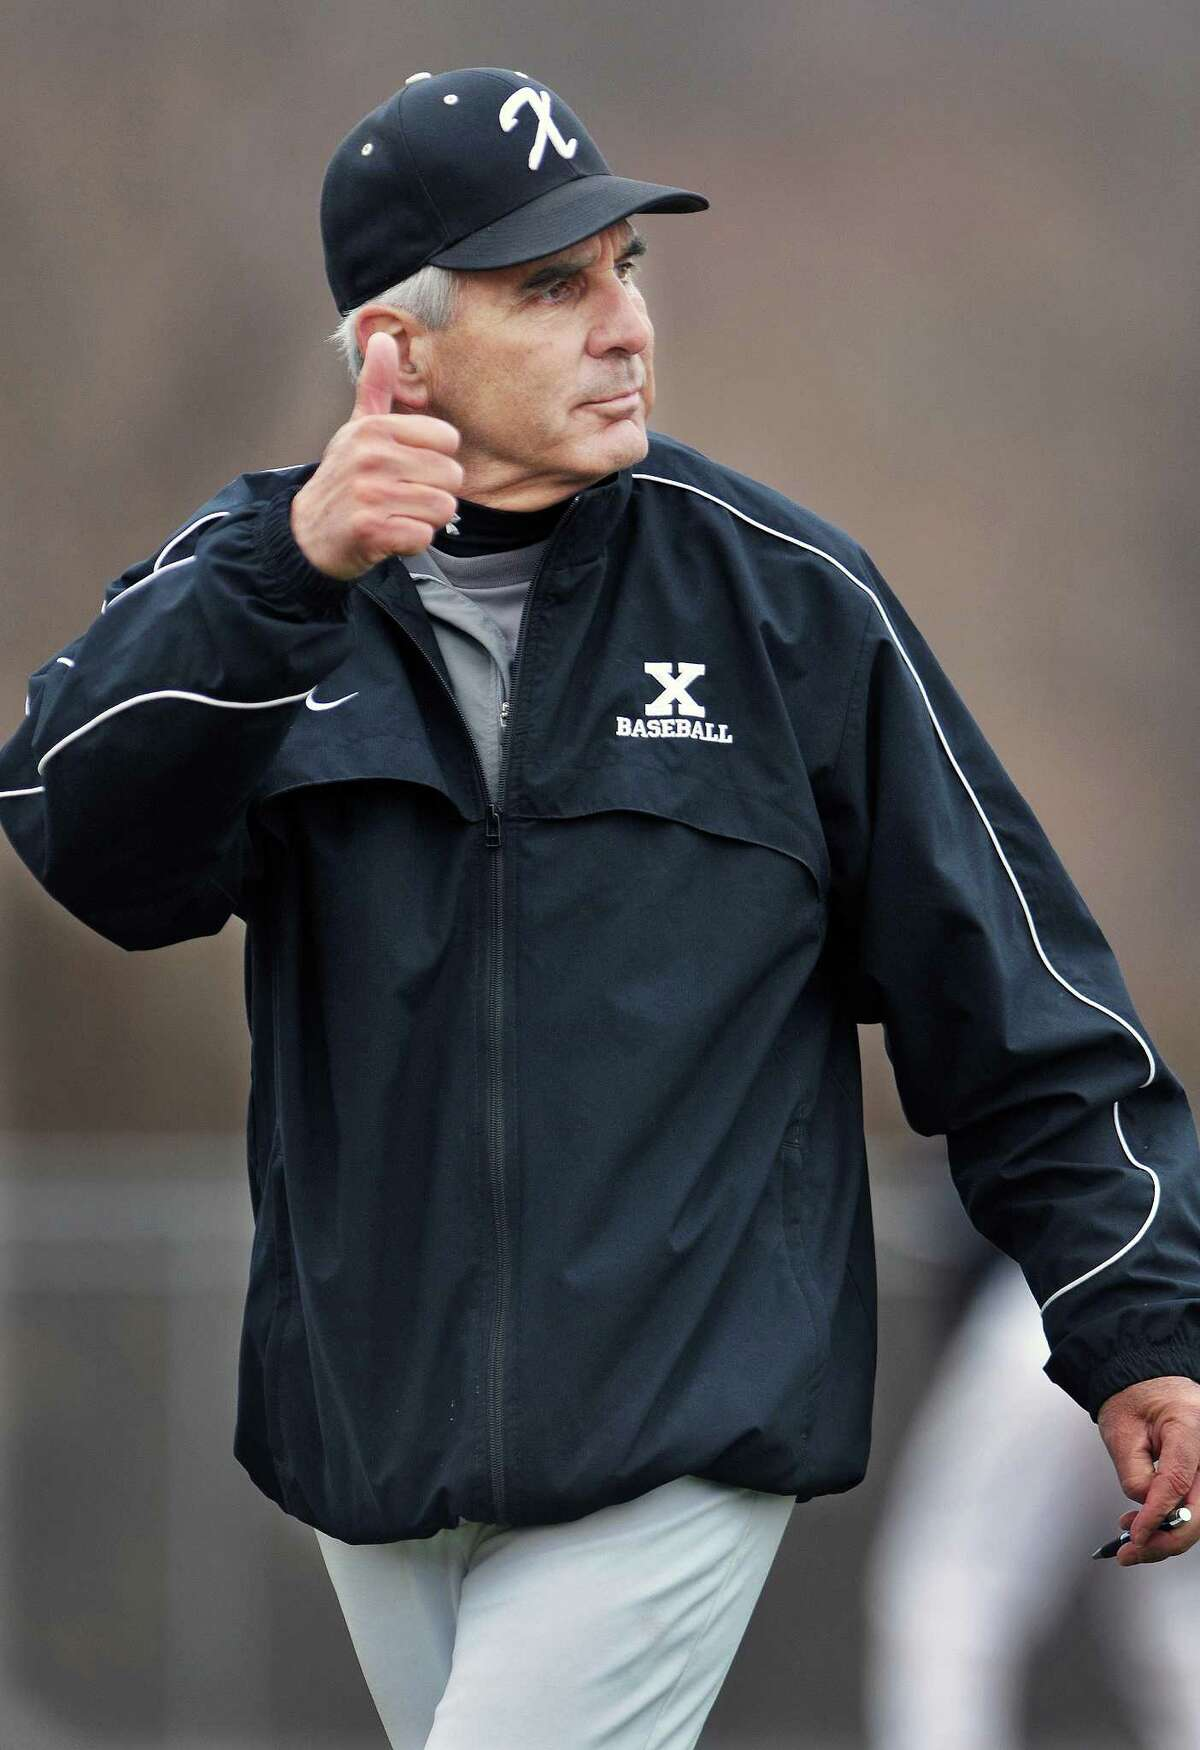 Catherine Avalone - The Middletown Press Xavier head coach, Rich Magner gives the thumbs up sign during a game in April 2011. Magner retired after 35 seasons with the Falcons.